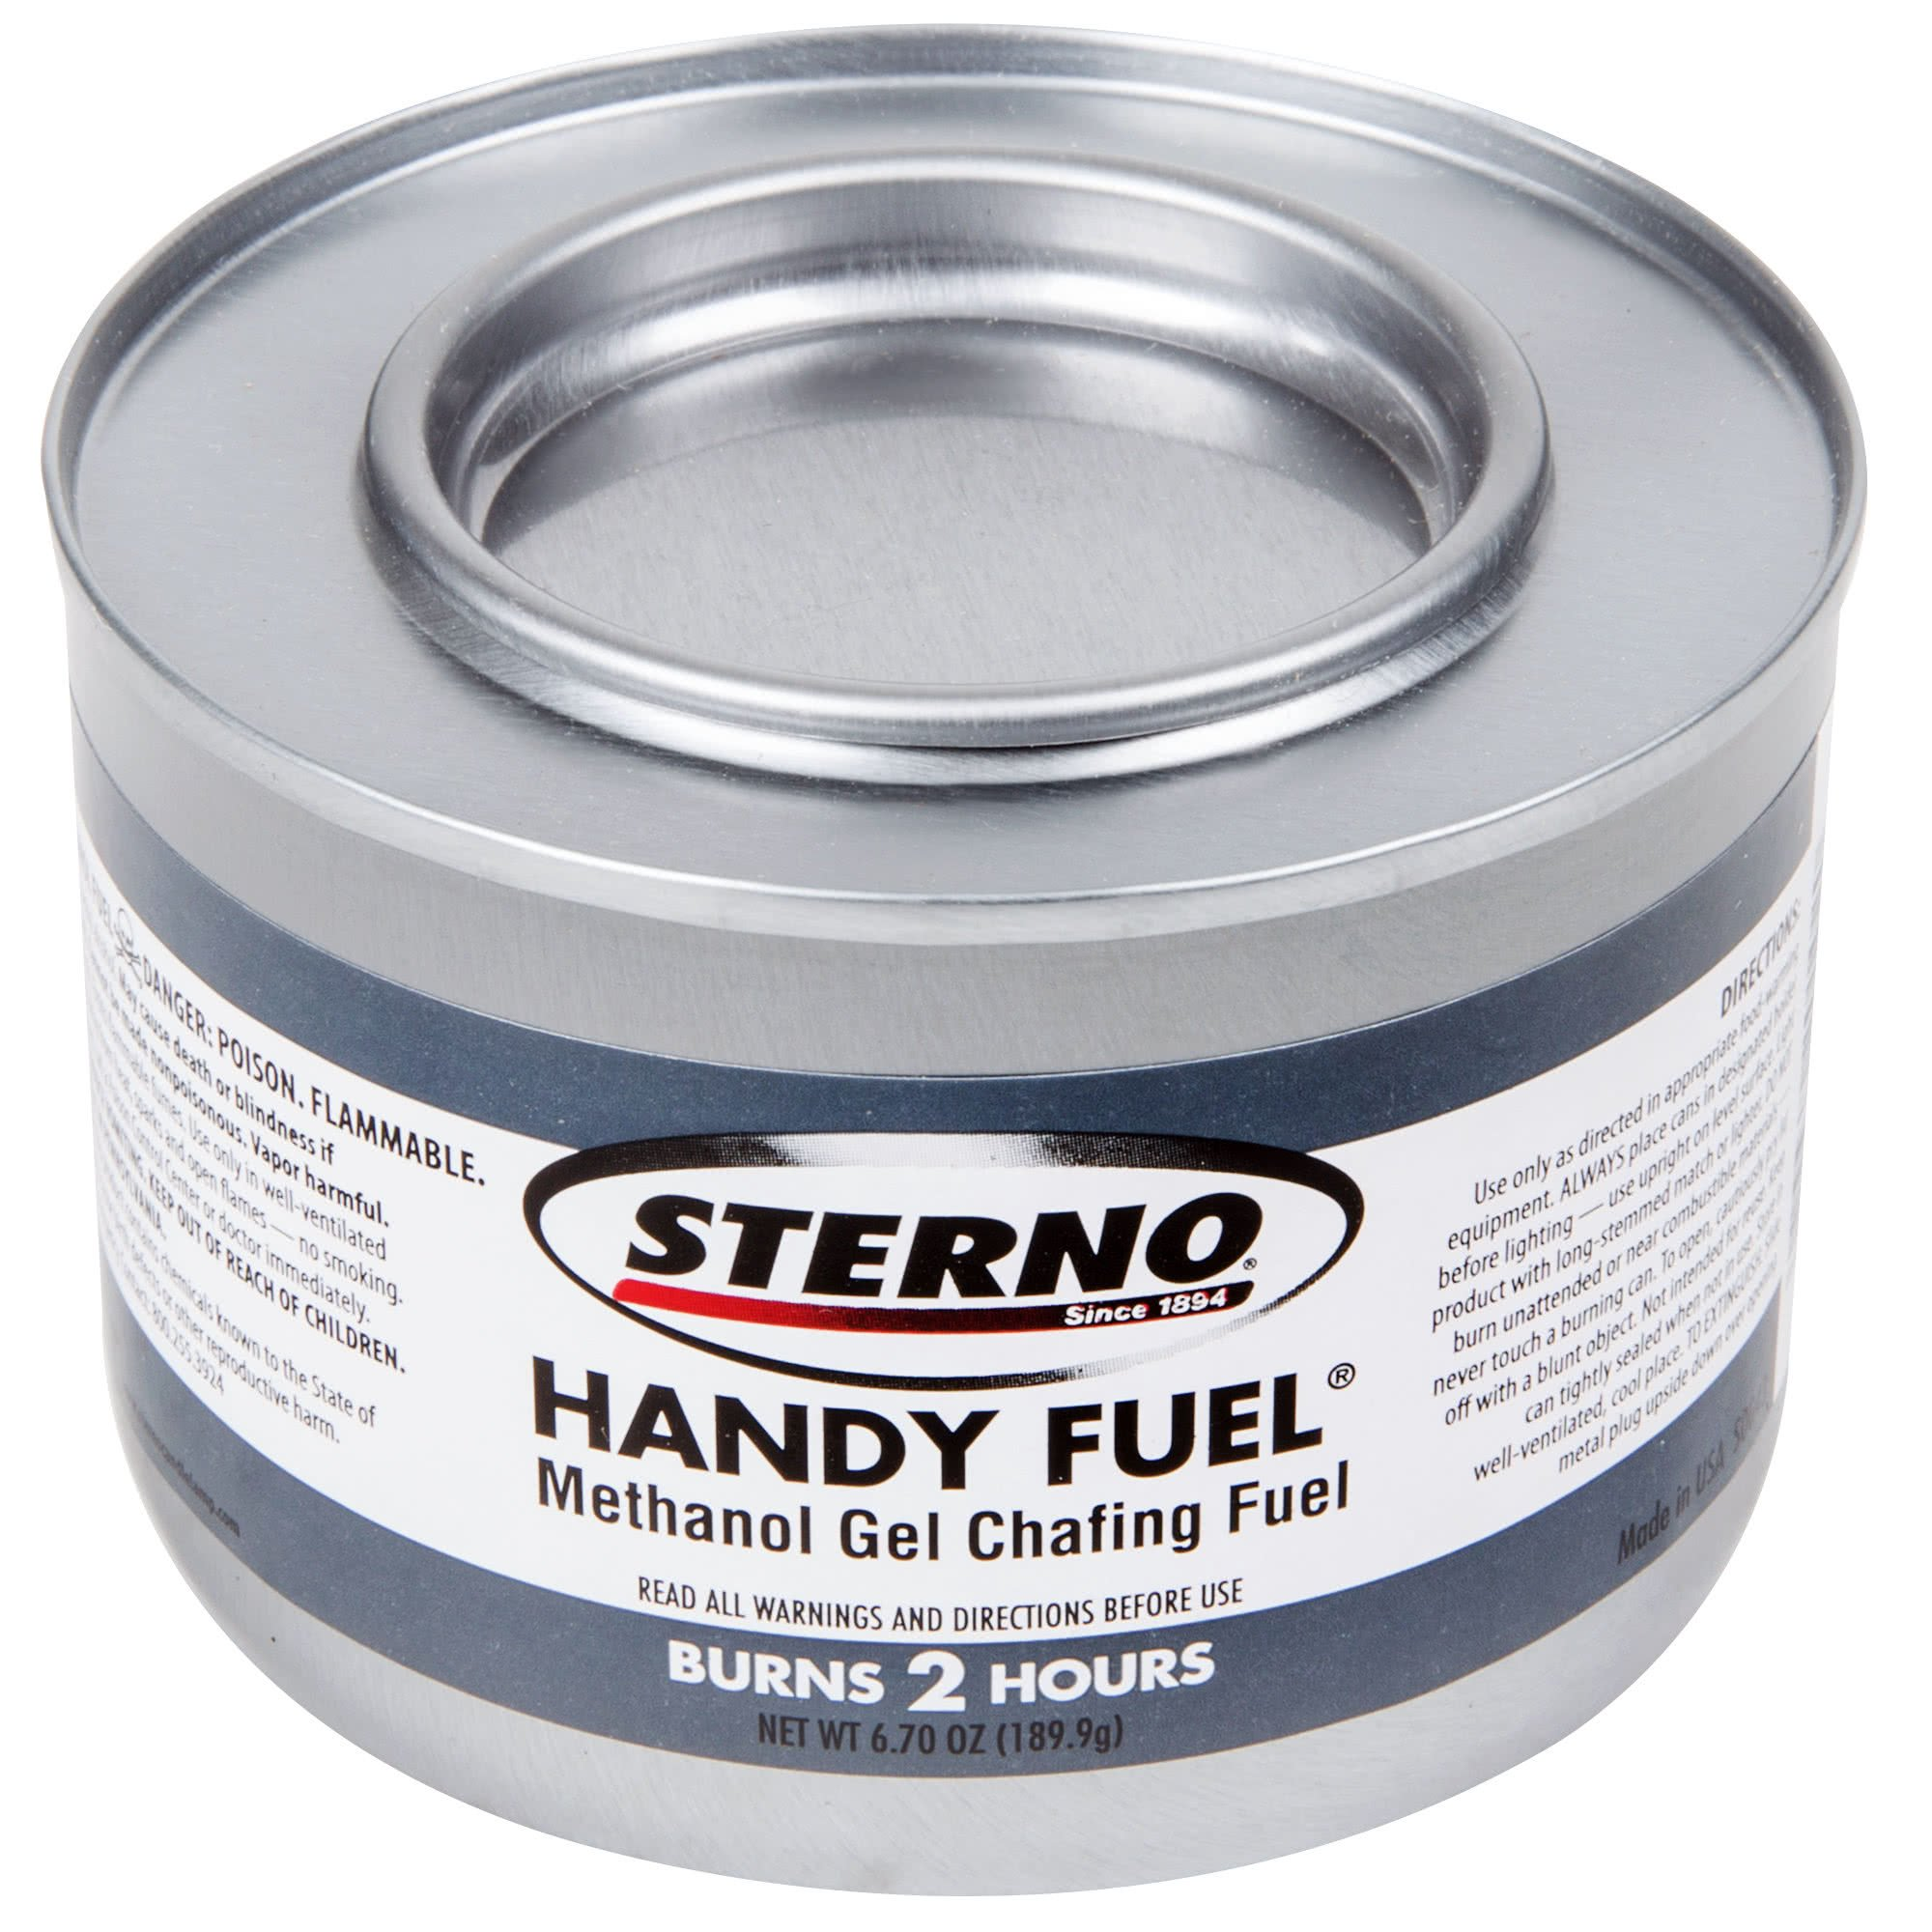 Sterno 6PK Products 20102 2 Hour Handy Methanol Gel Chafing Fuel 6.7oz 6/Pack, BLUE by Sterno